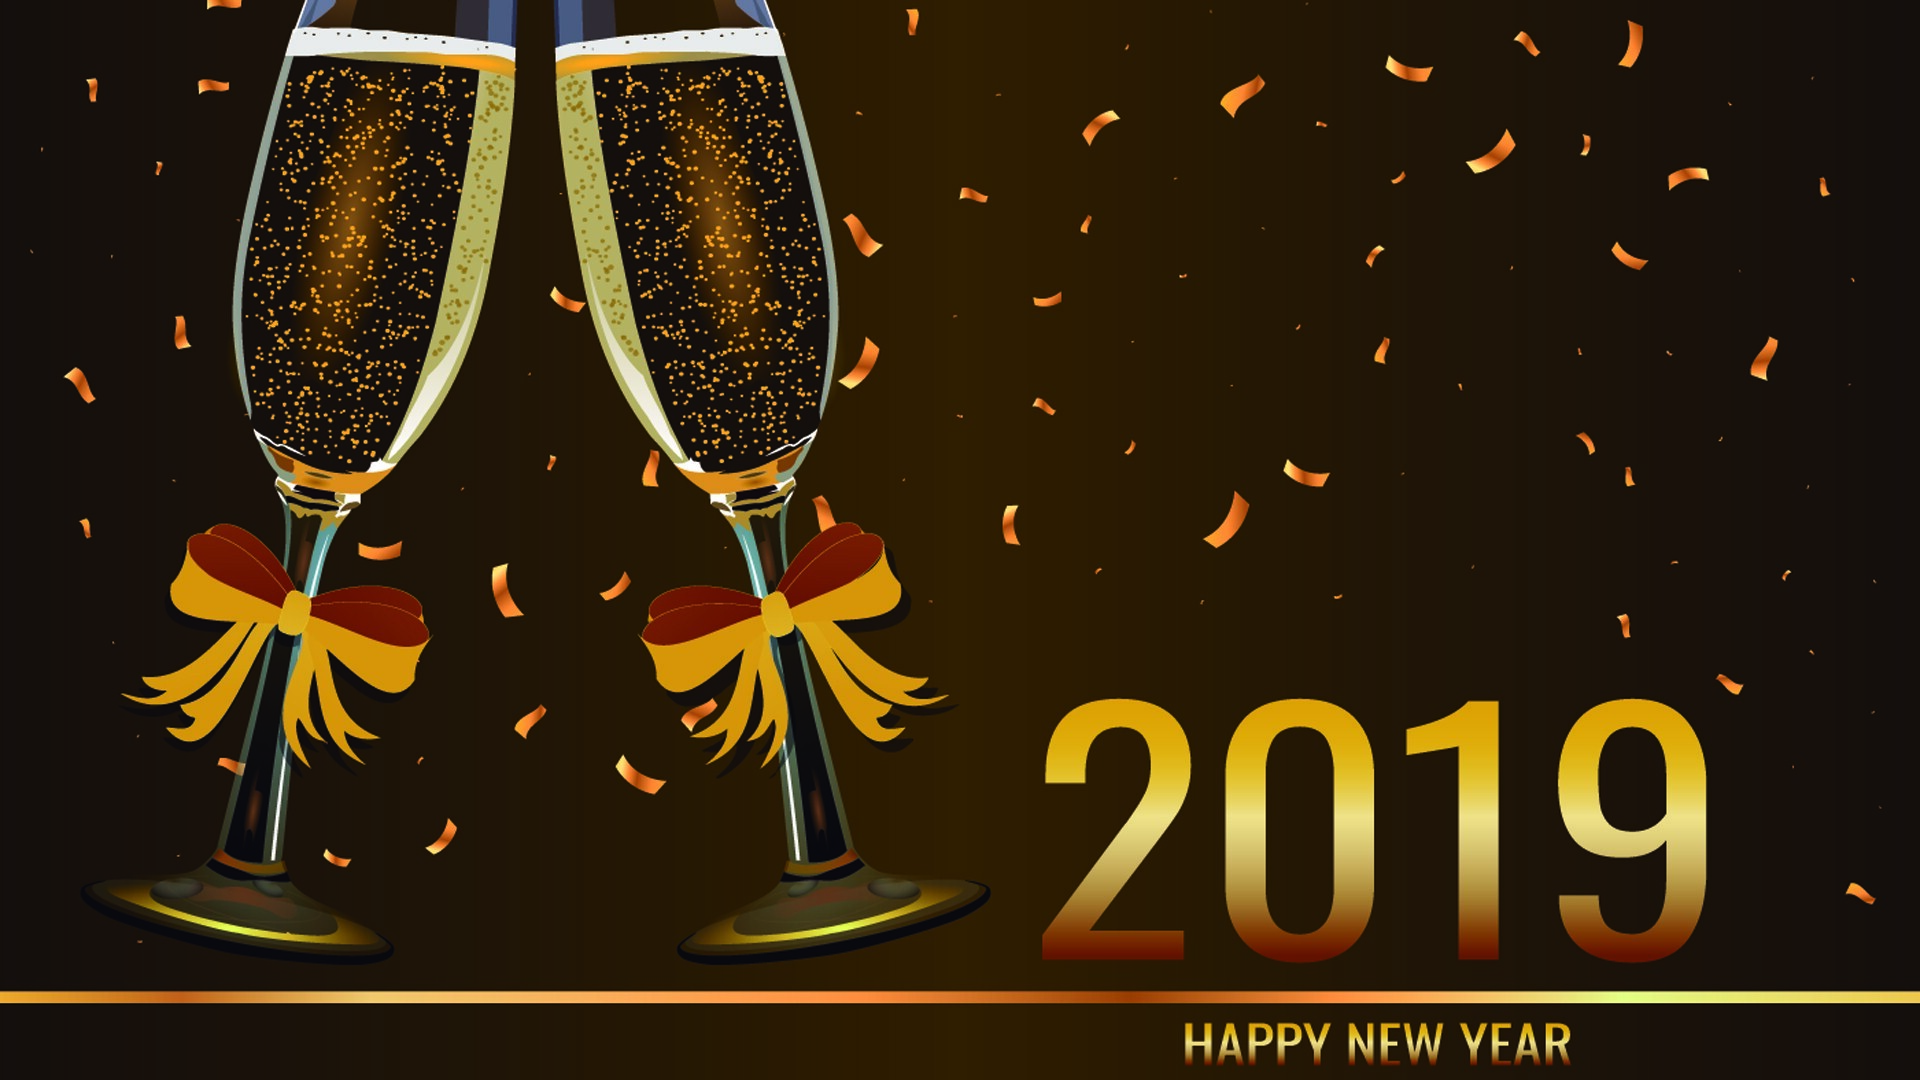 HD Images of 2019 New Year Holiday  HD Wallpapers